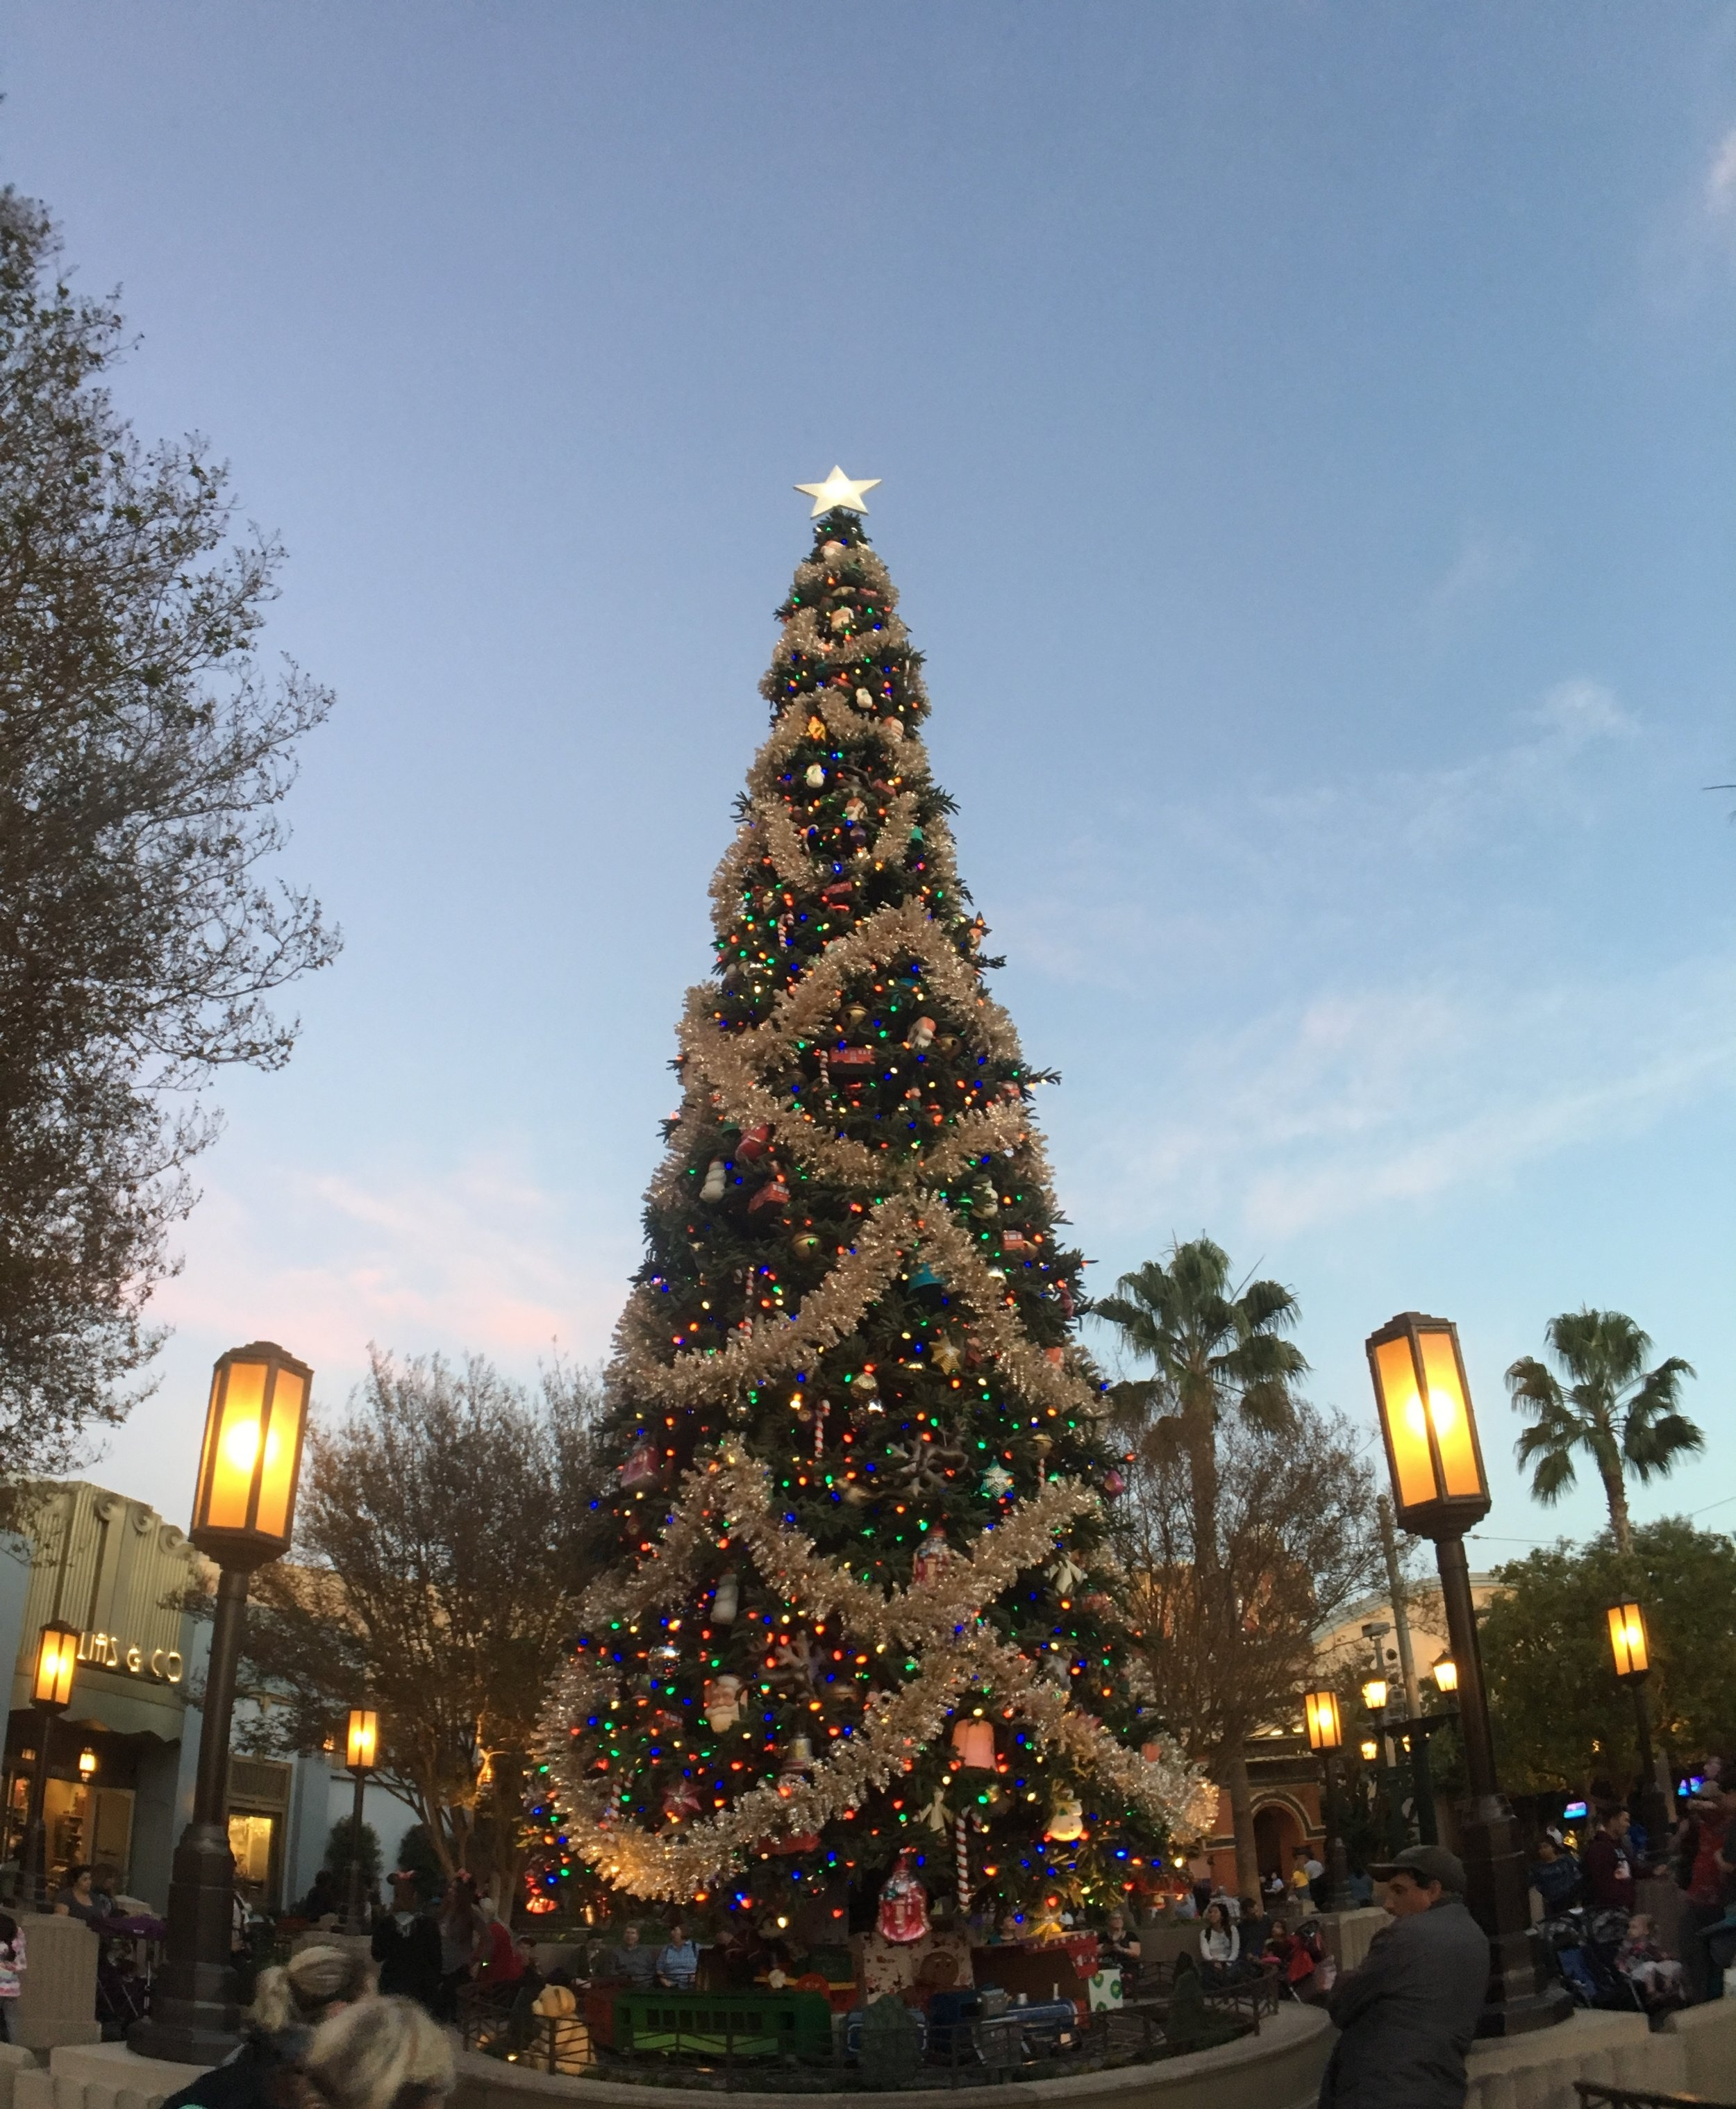 Tips For Dealing With Crowds At Disneyland During Christmas.  What You Need To Know To Avoid Christmas Crowds At Disneyland. #Disneyland #Christmas #DCA #Disney #DisneylandTips